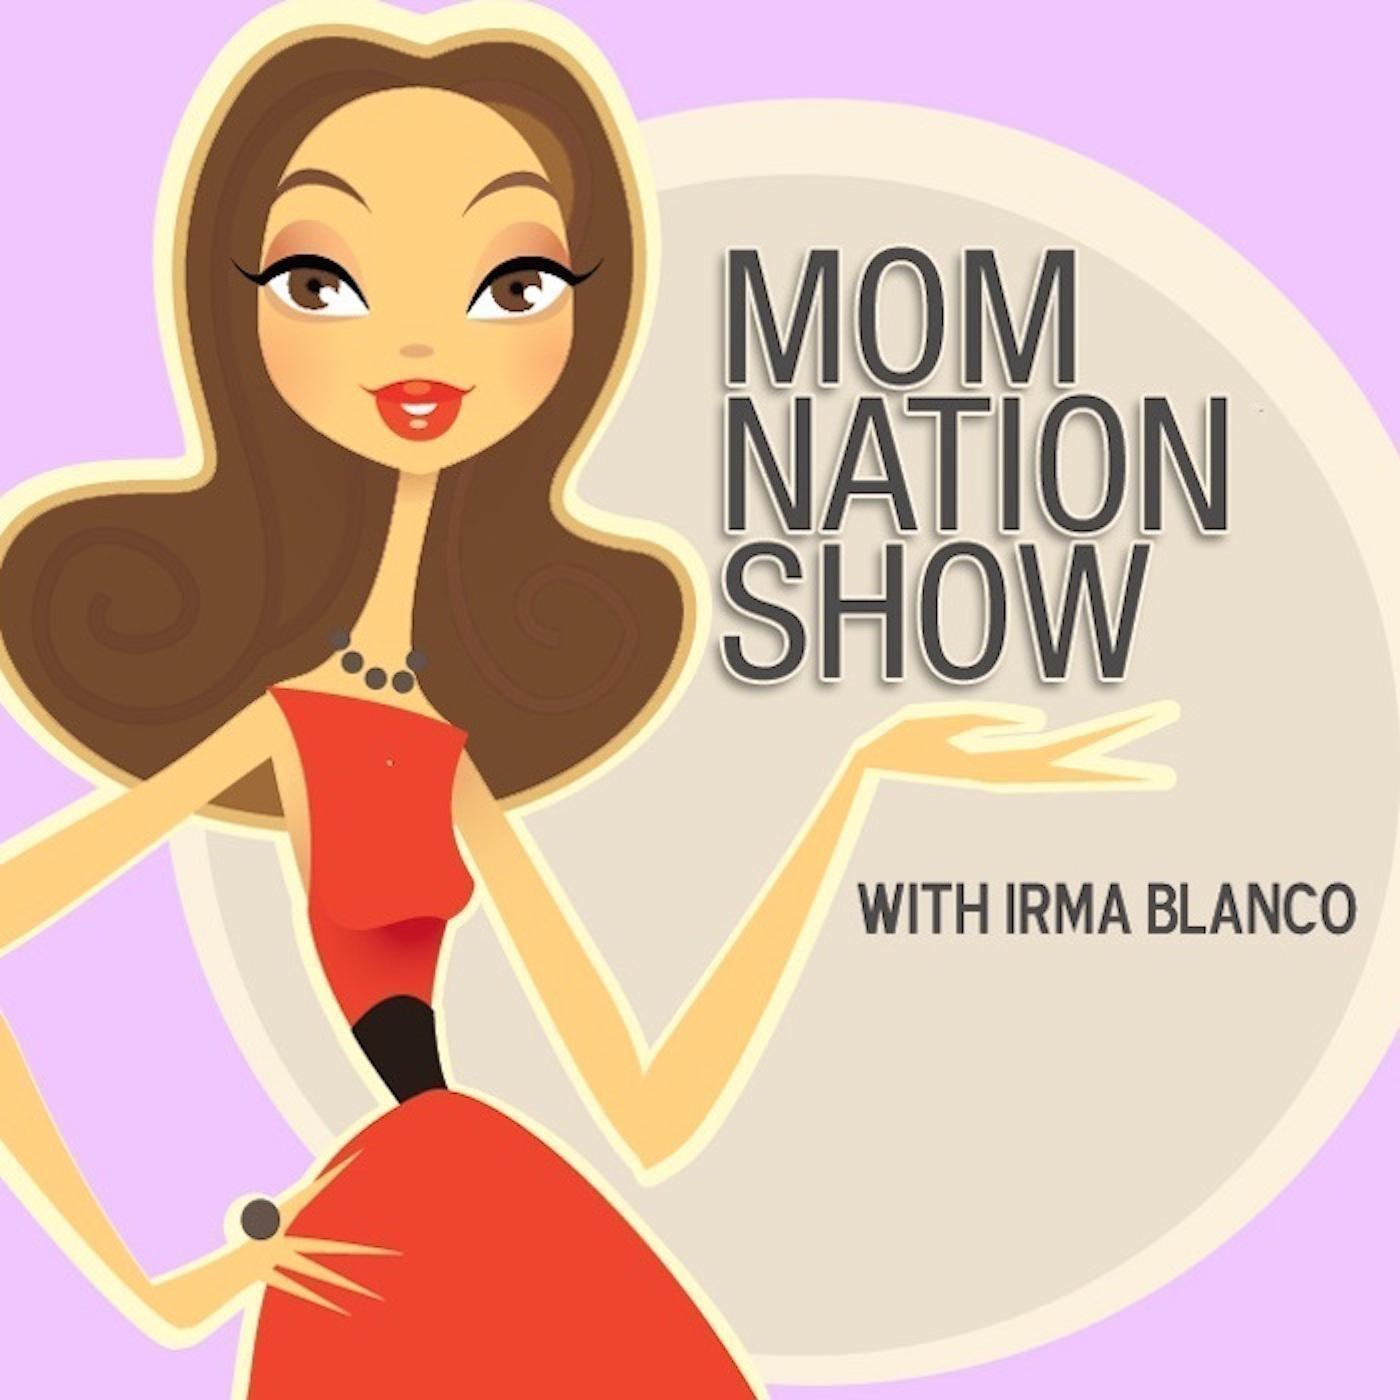 Mom Nation Show